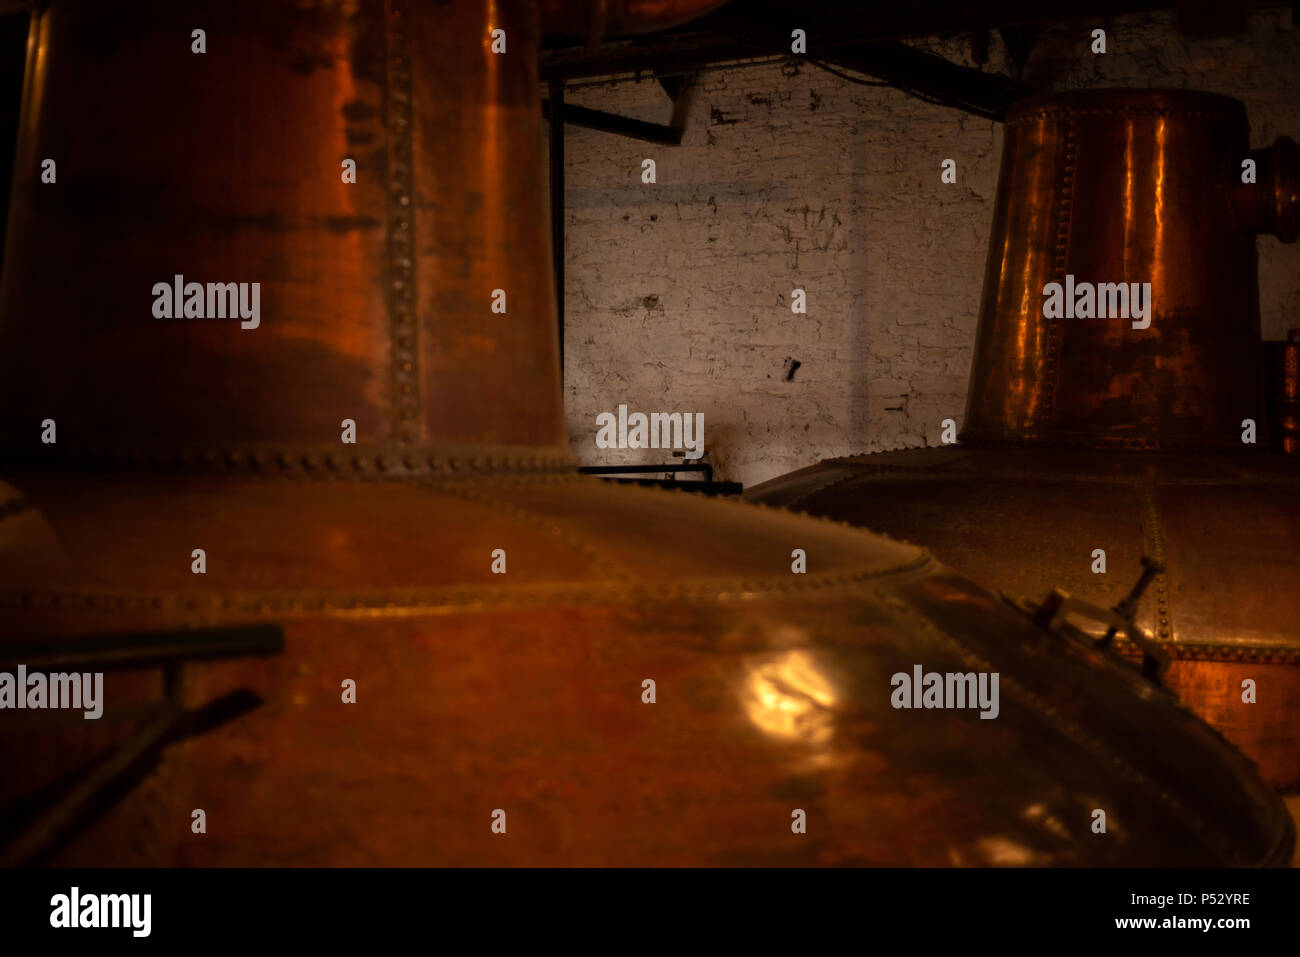 Close-up details of the Feints Still and Spirit Still in the Still House of the Old Jameson Whiskey Distillery in Midleton,County Cork,Ireland. - Stock Image